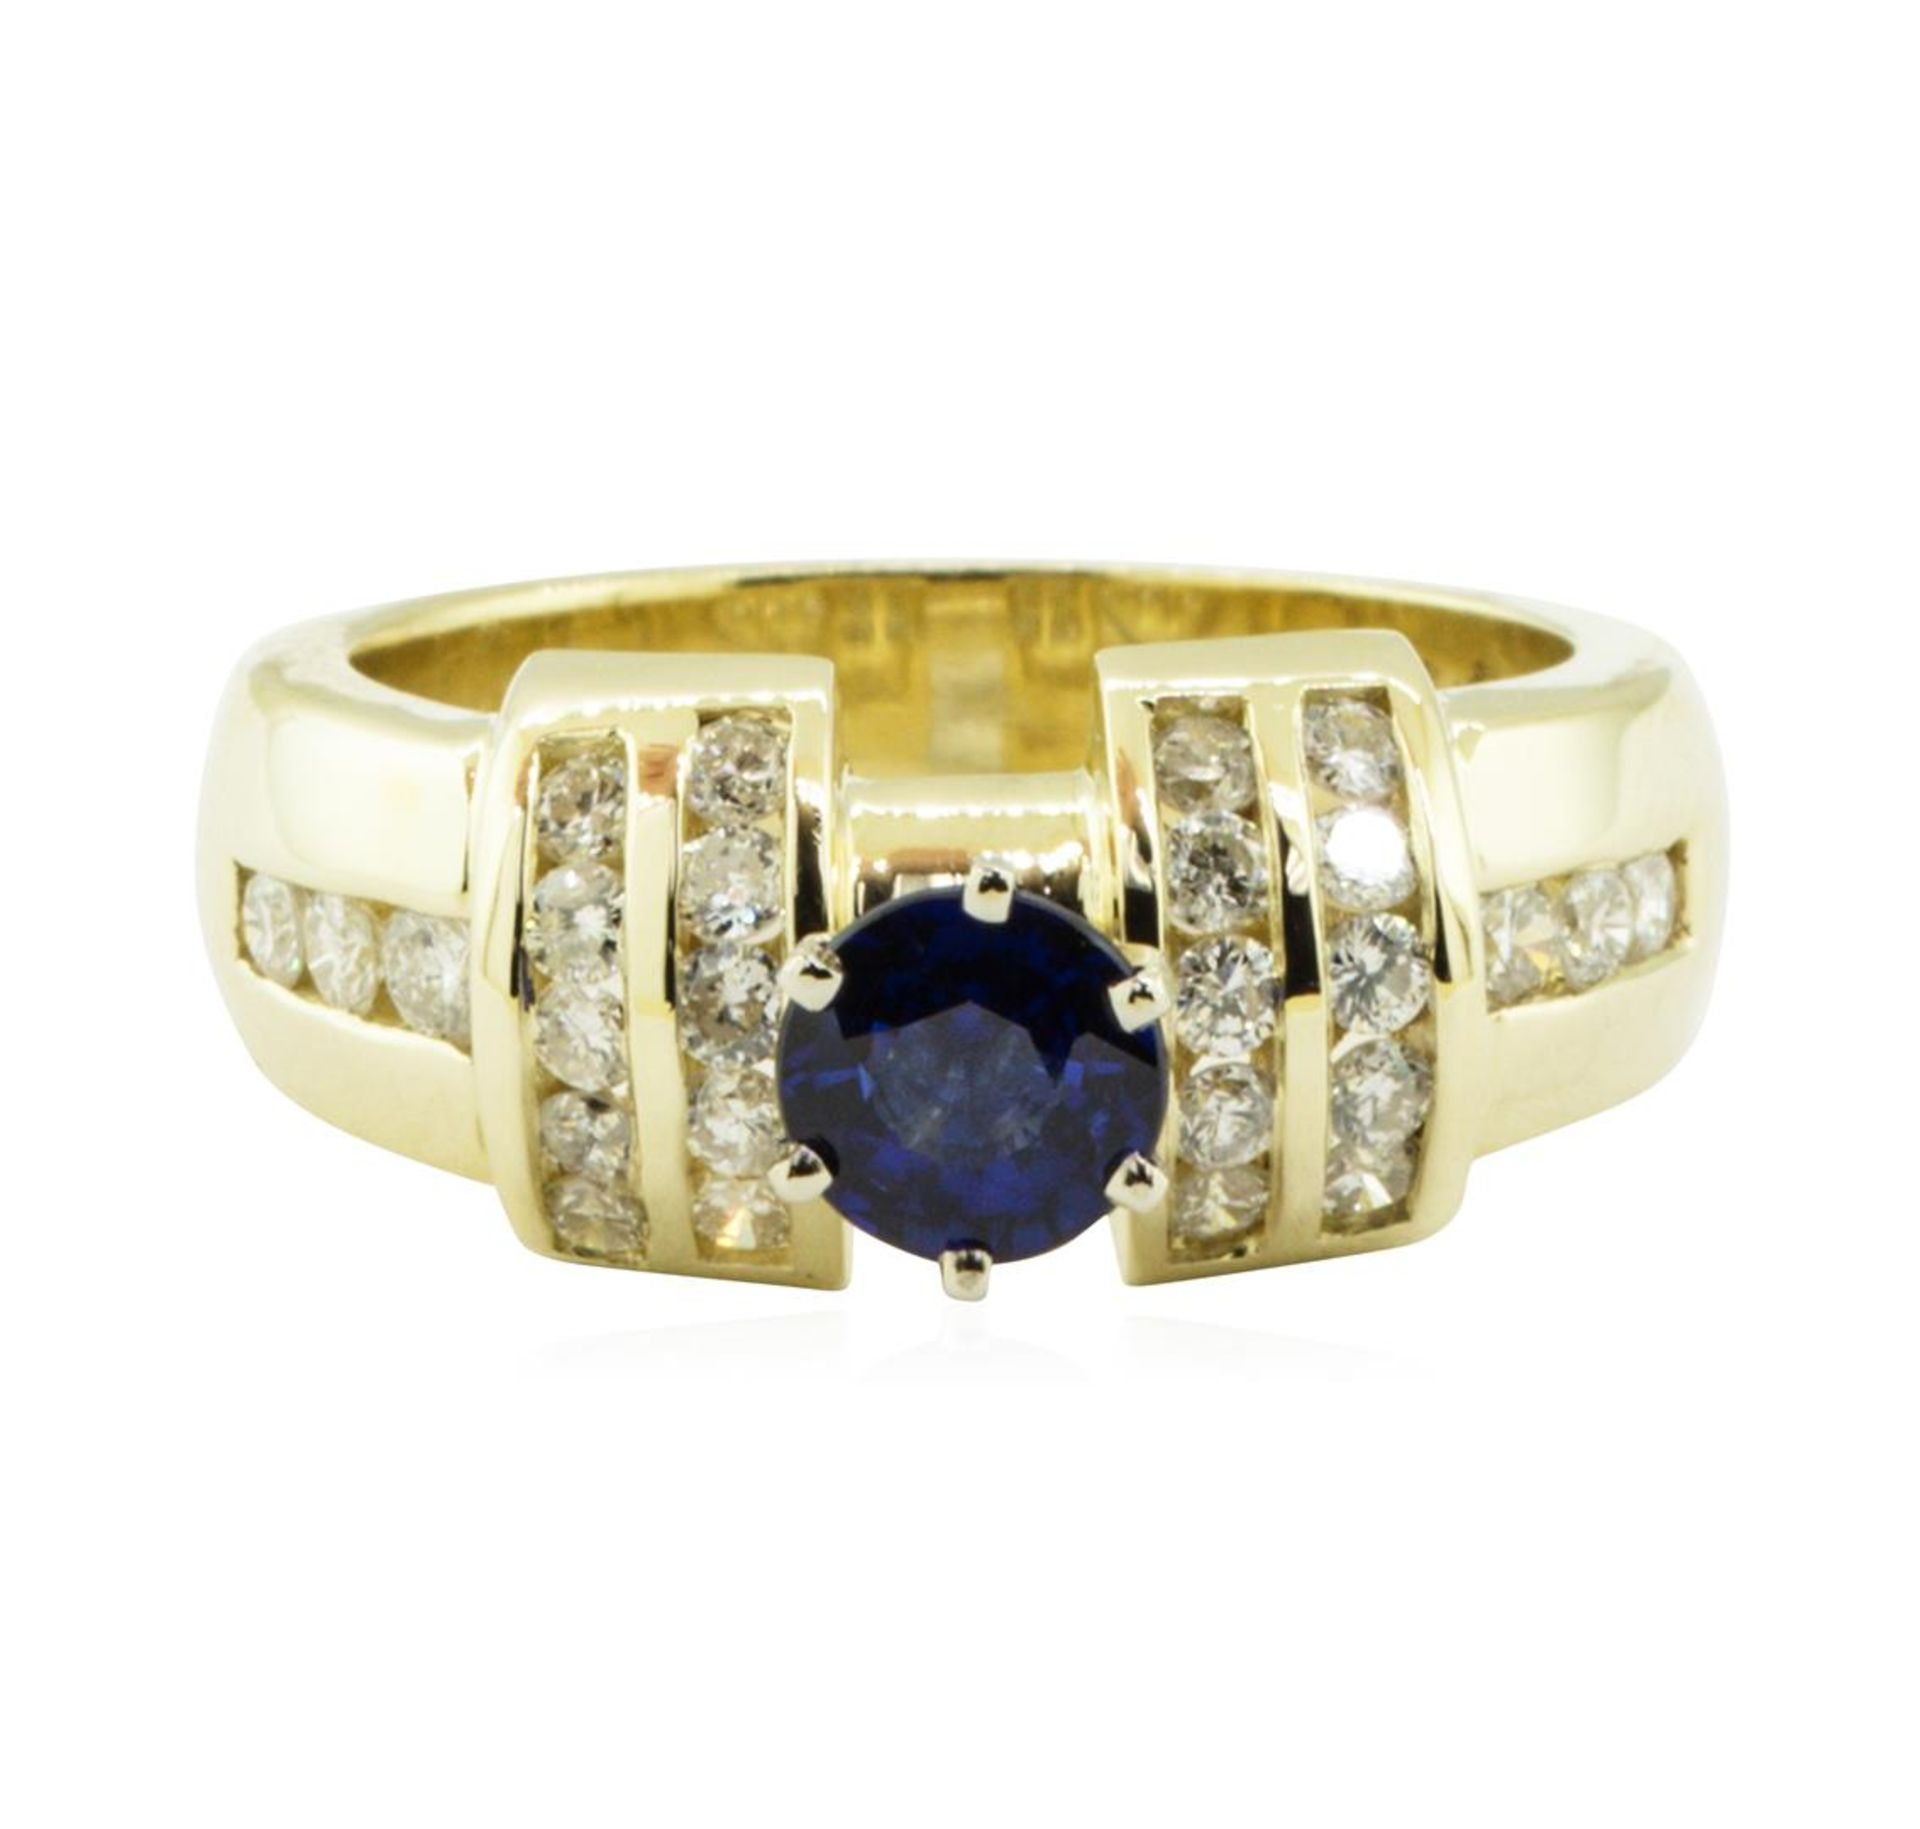 1.40 ctw Round Brilliant Blue Sapphire And Diamond Ring - 14KT Yellow Gold - Image 2 of 5